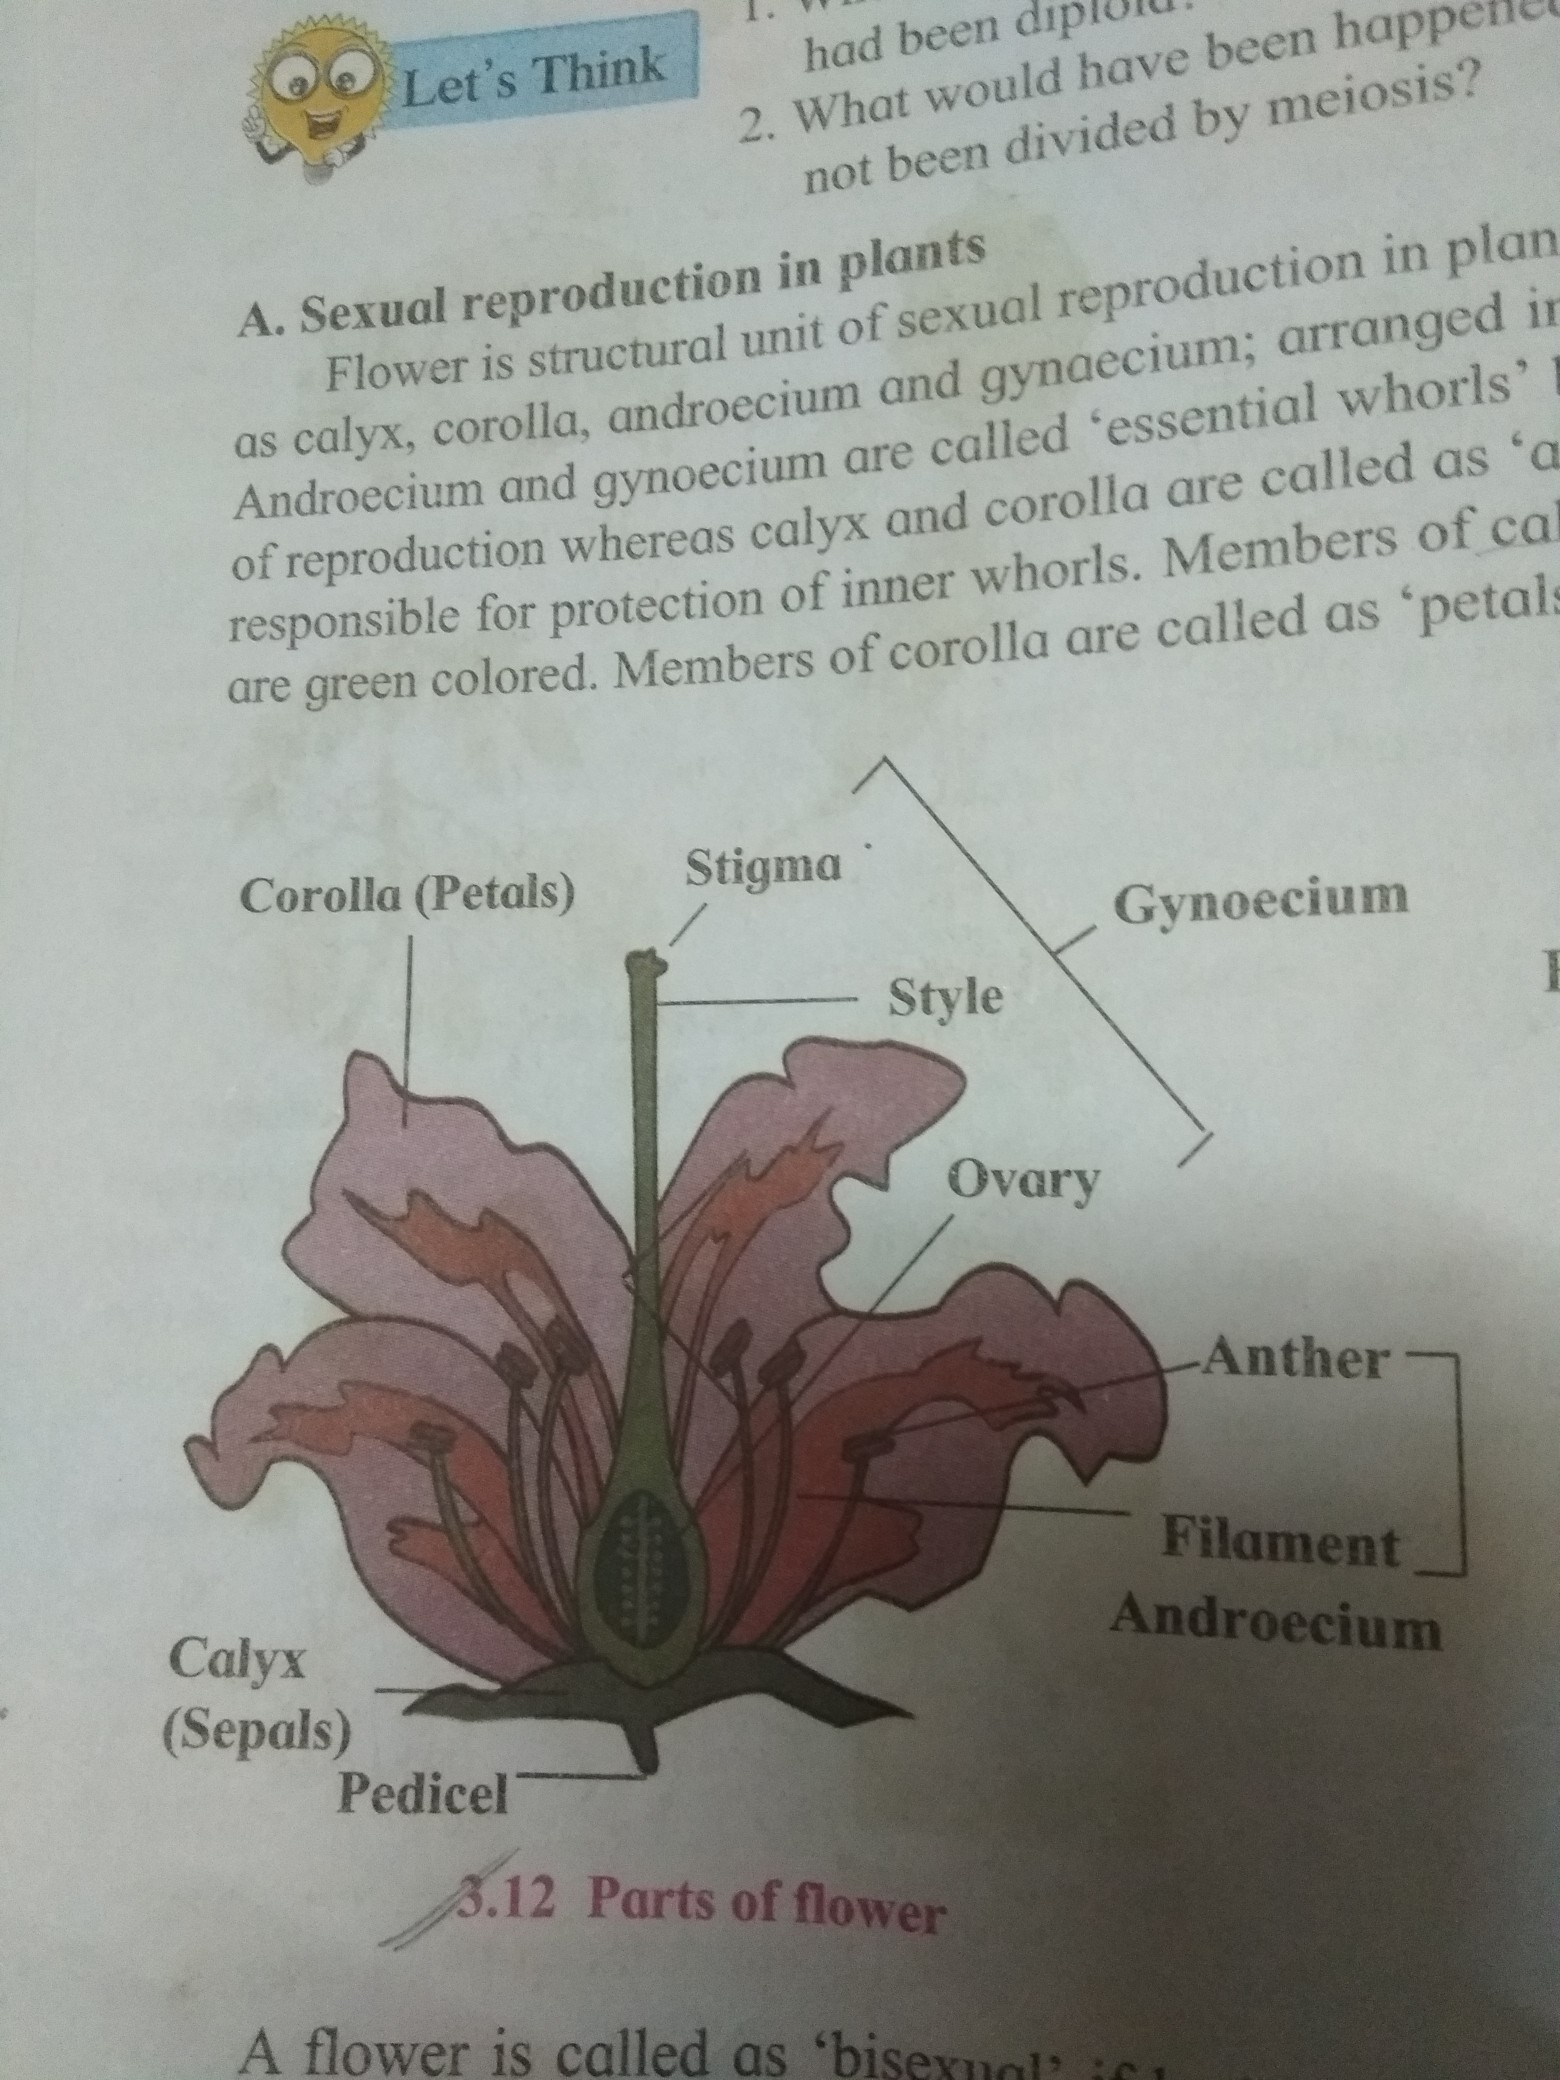 Draw A Diagram Of The Longitudinal Section Of A Flower And